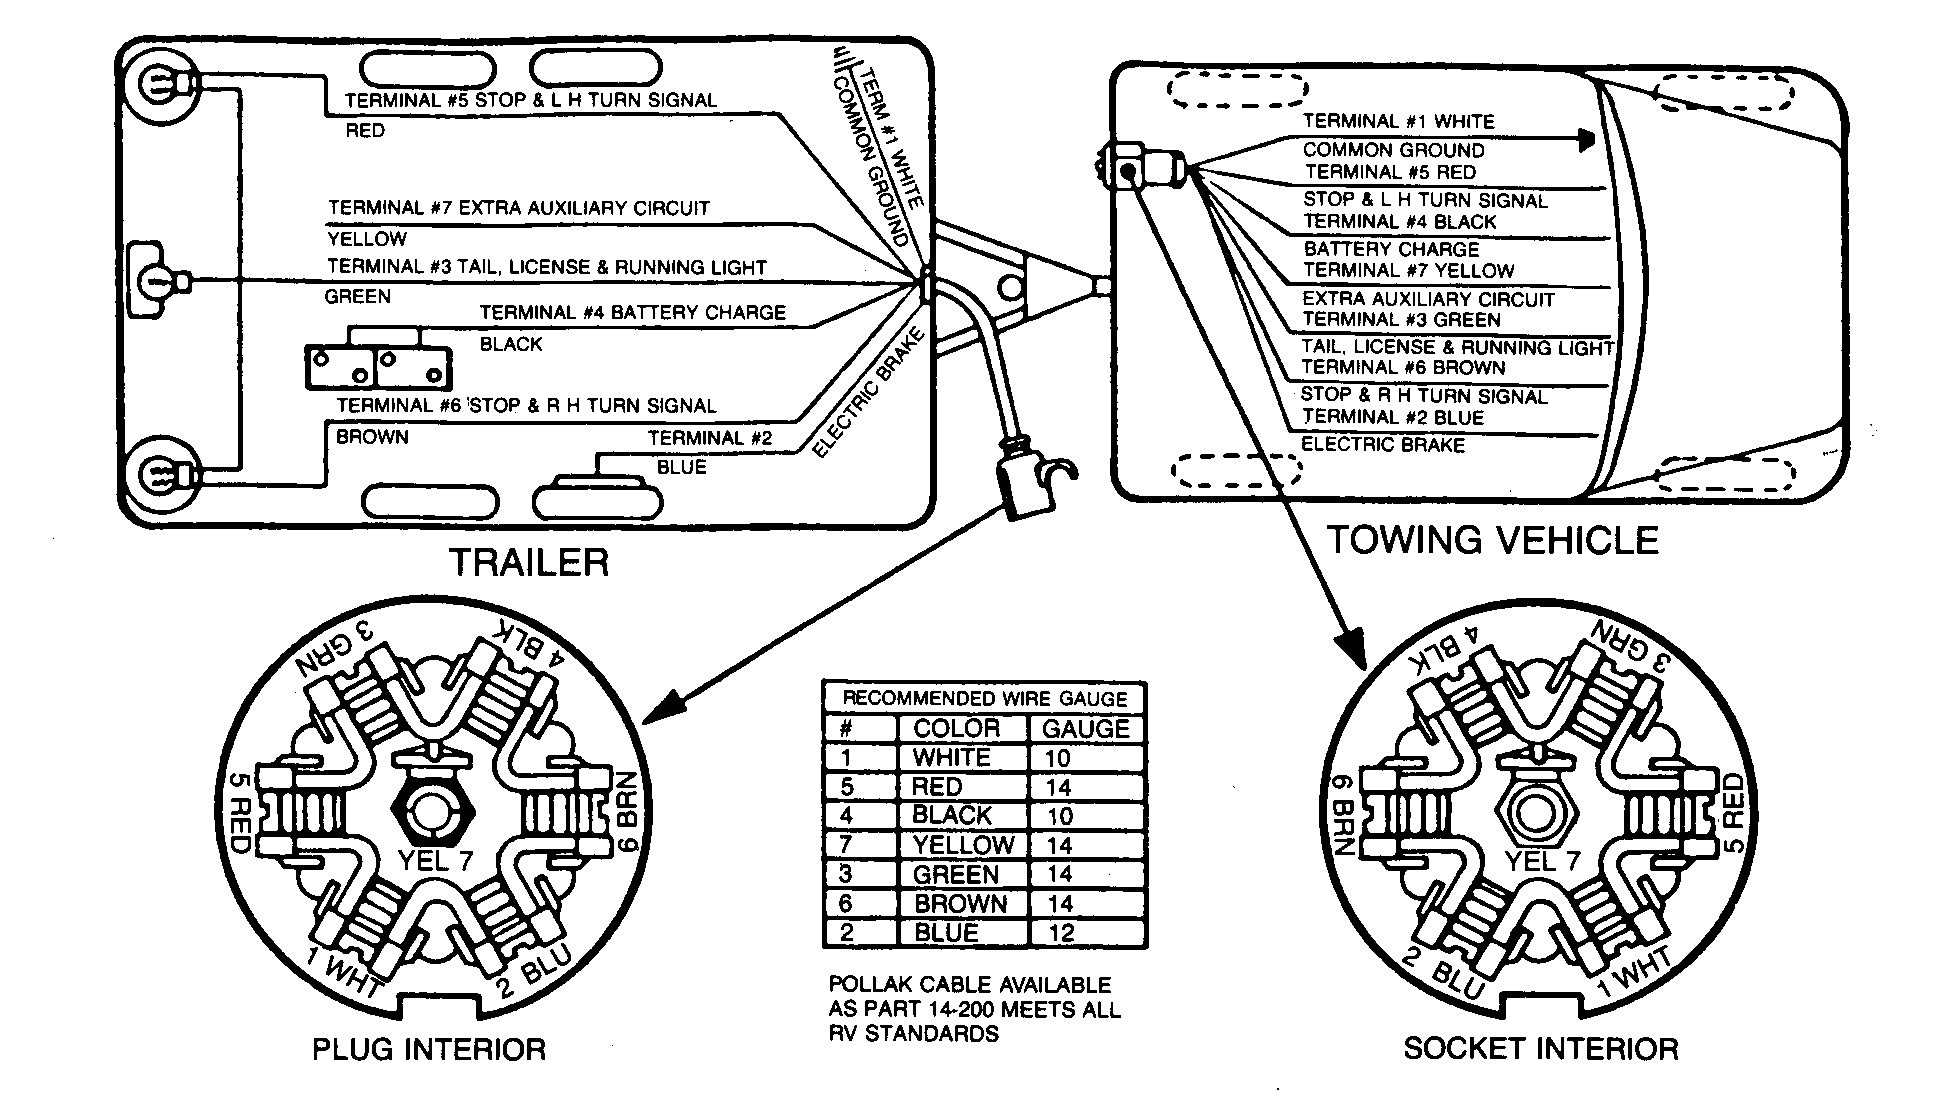 7 pin trailer wiring diagram with ke and breakaway | Trailer ...